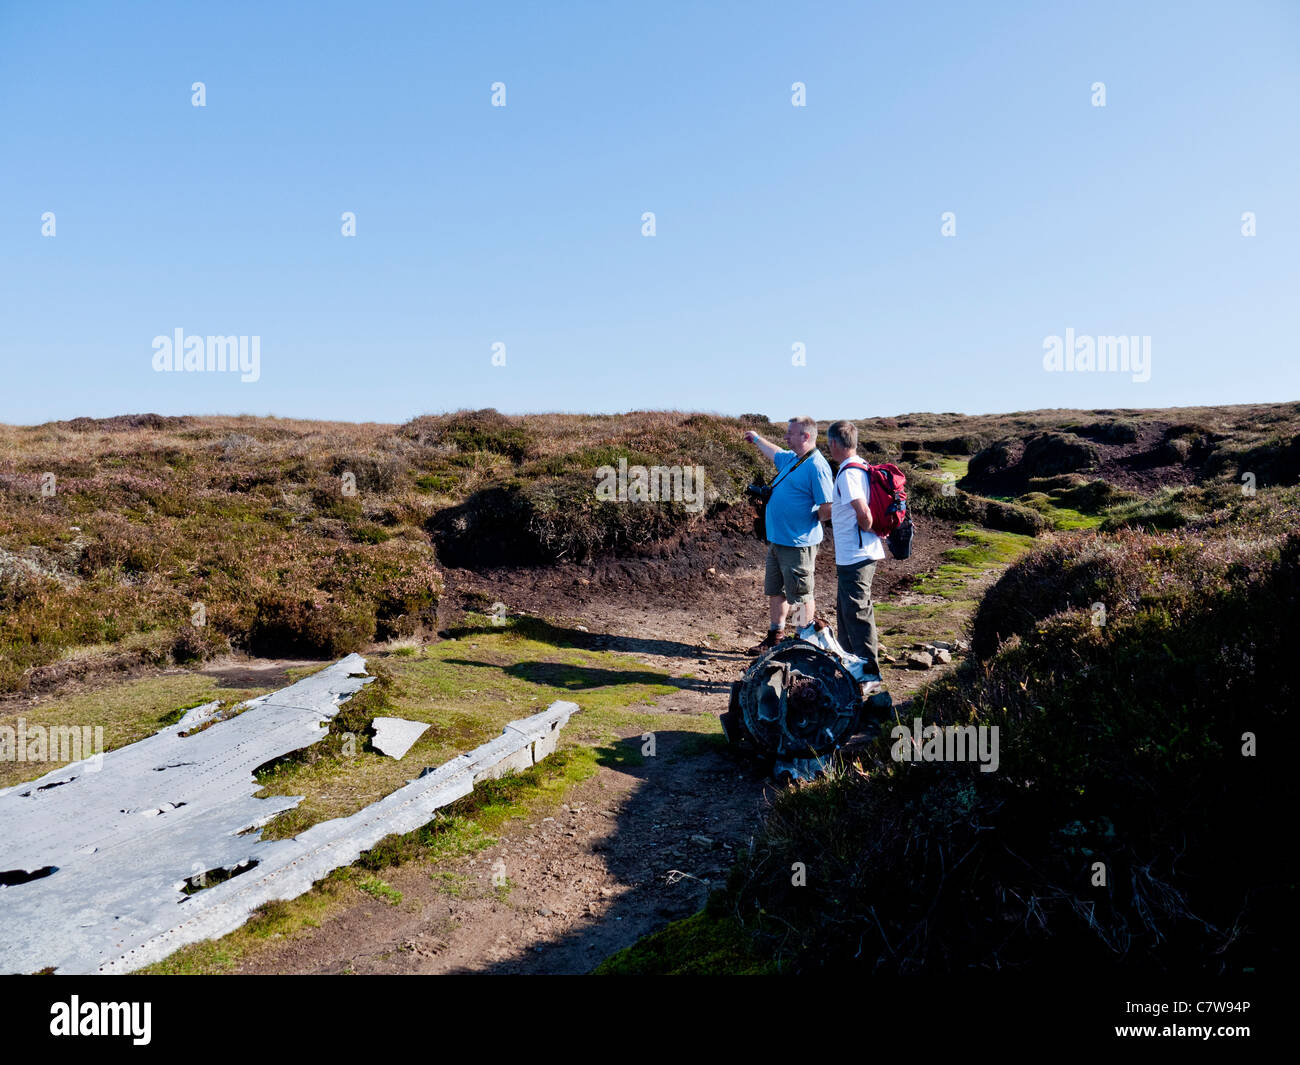 Aircraft Crash Site Stock Photos Images Crashed Beacon Discussing Wreckage On Mill Hill High Peak Derbyshire England Uk